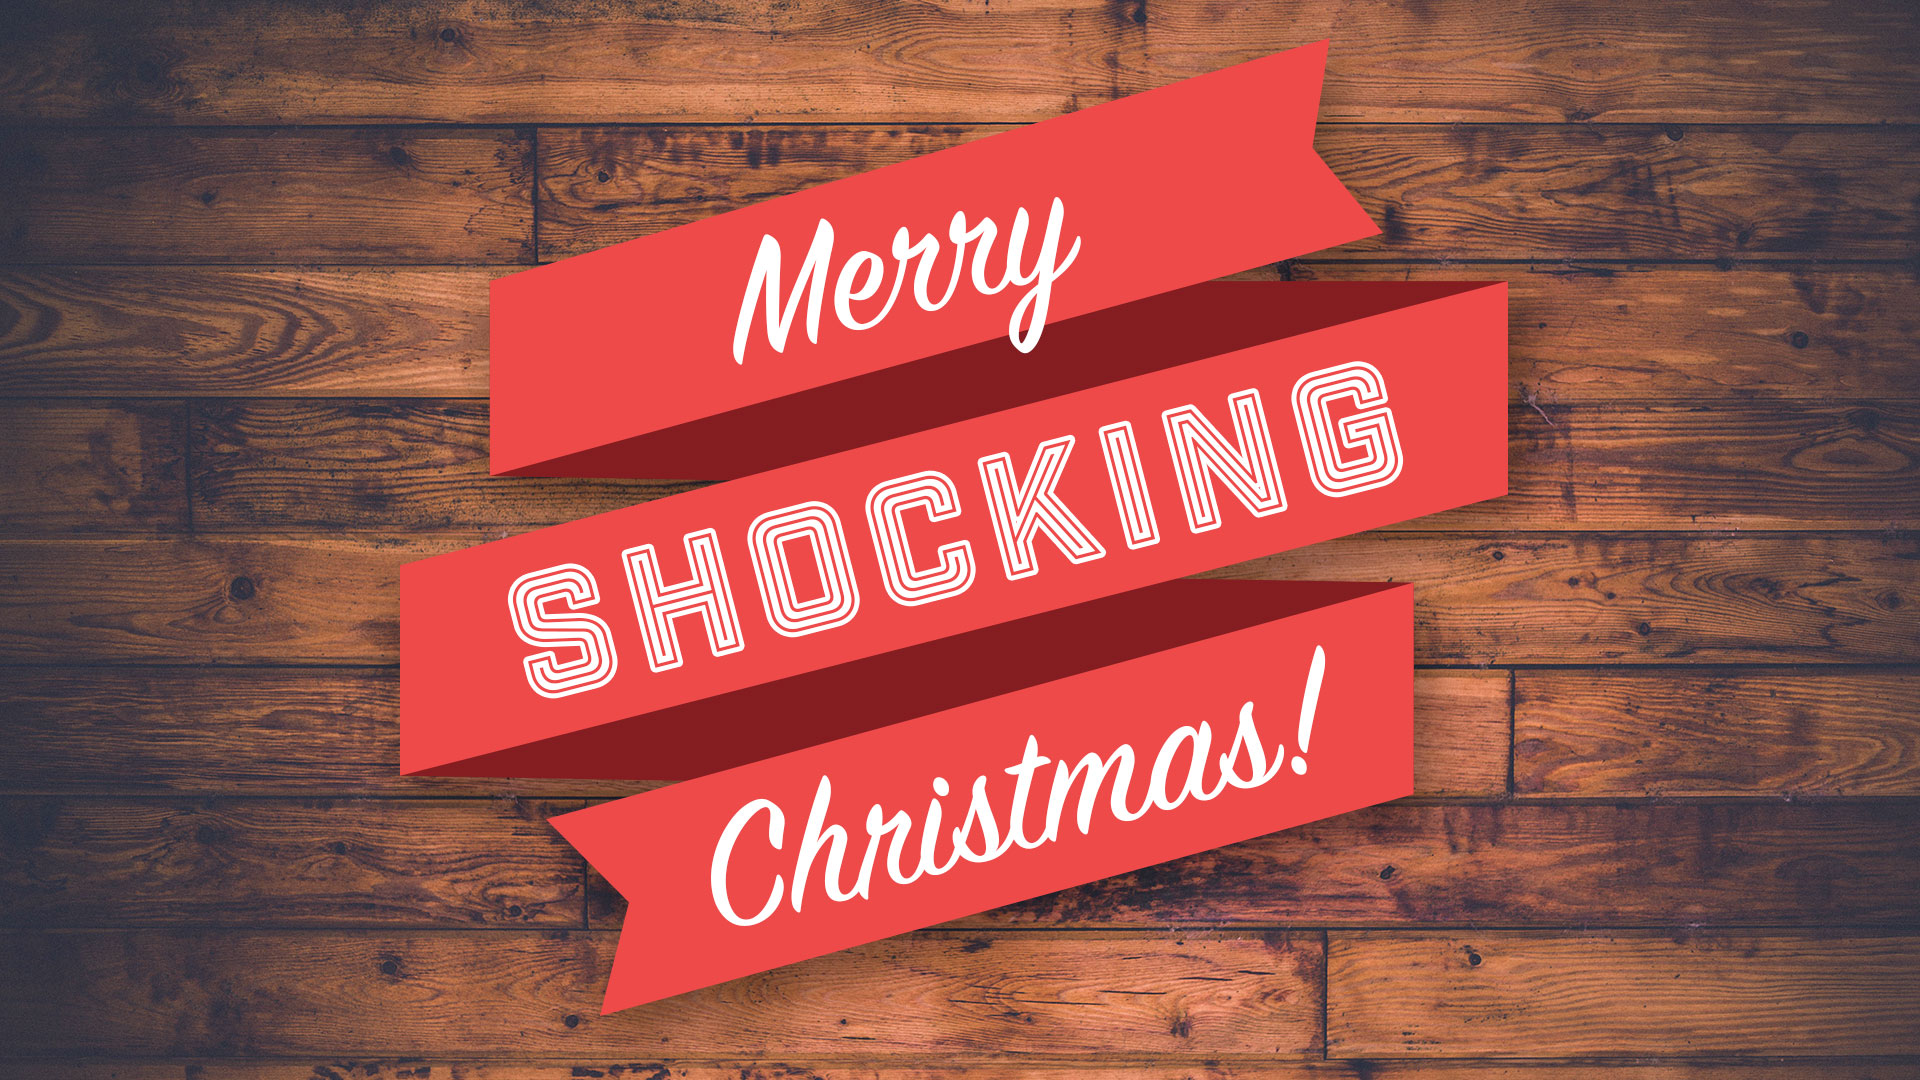 A Shocking Christmas